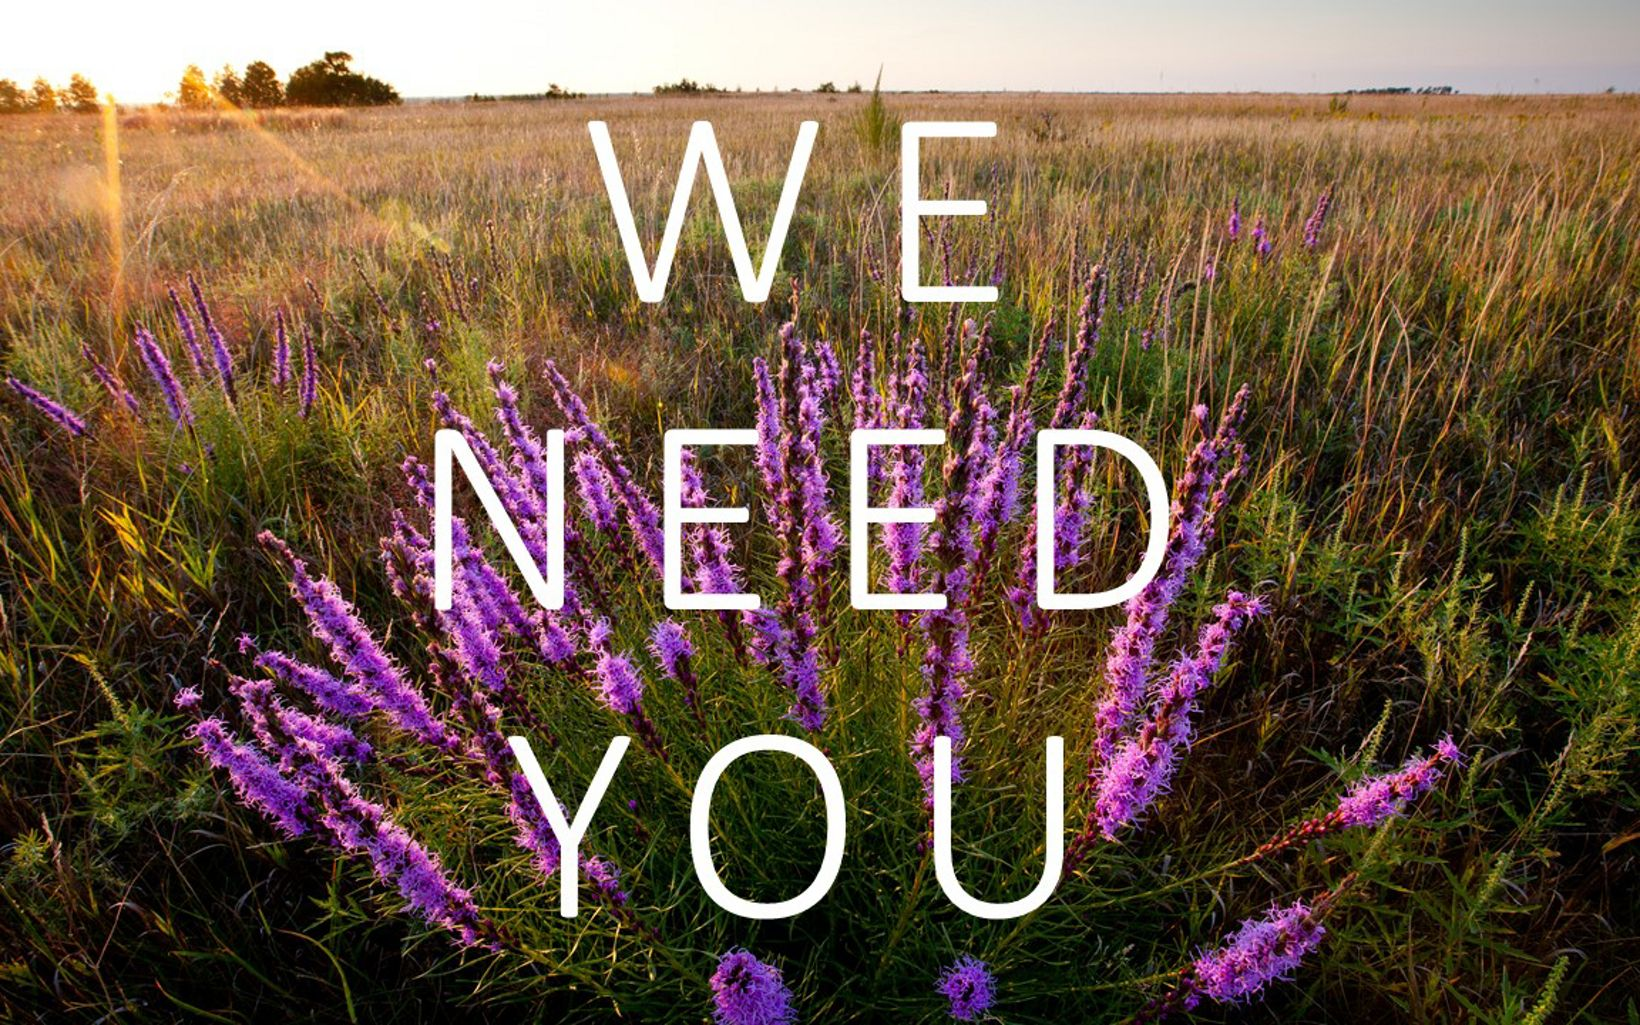 The words we need you in front of a landscape image with purple flowers.